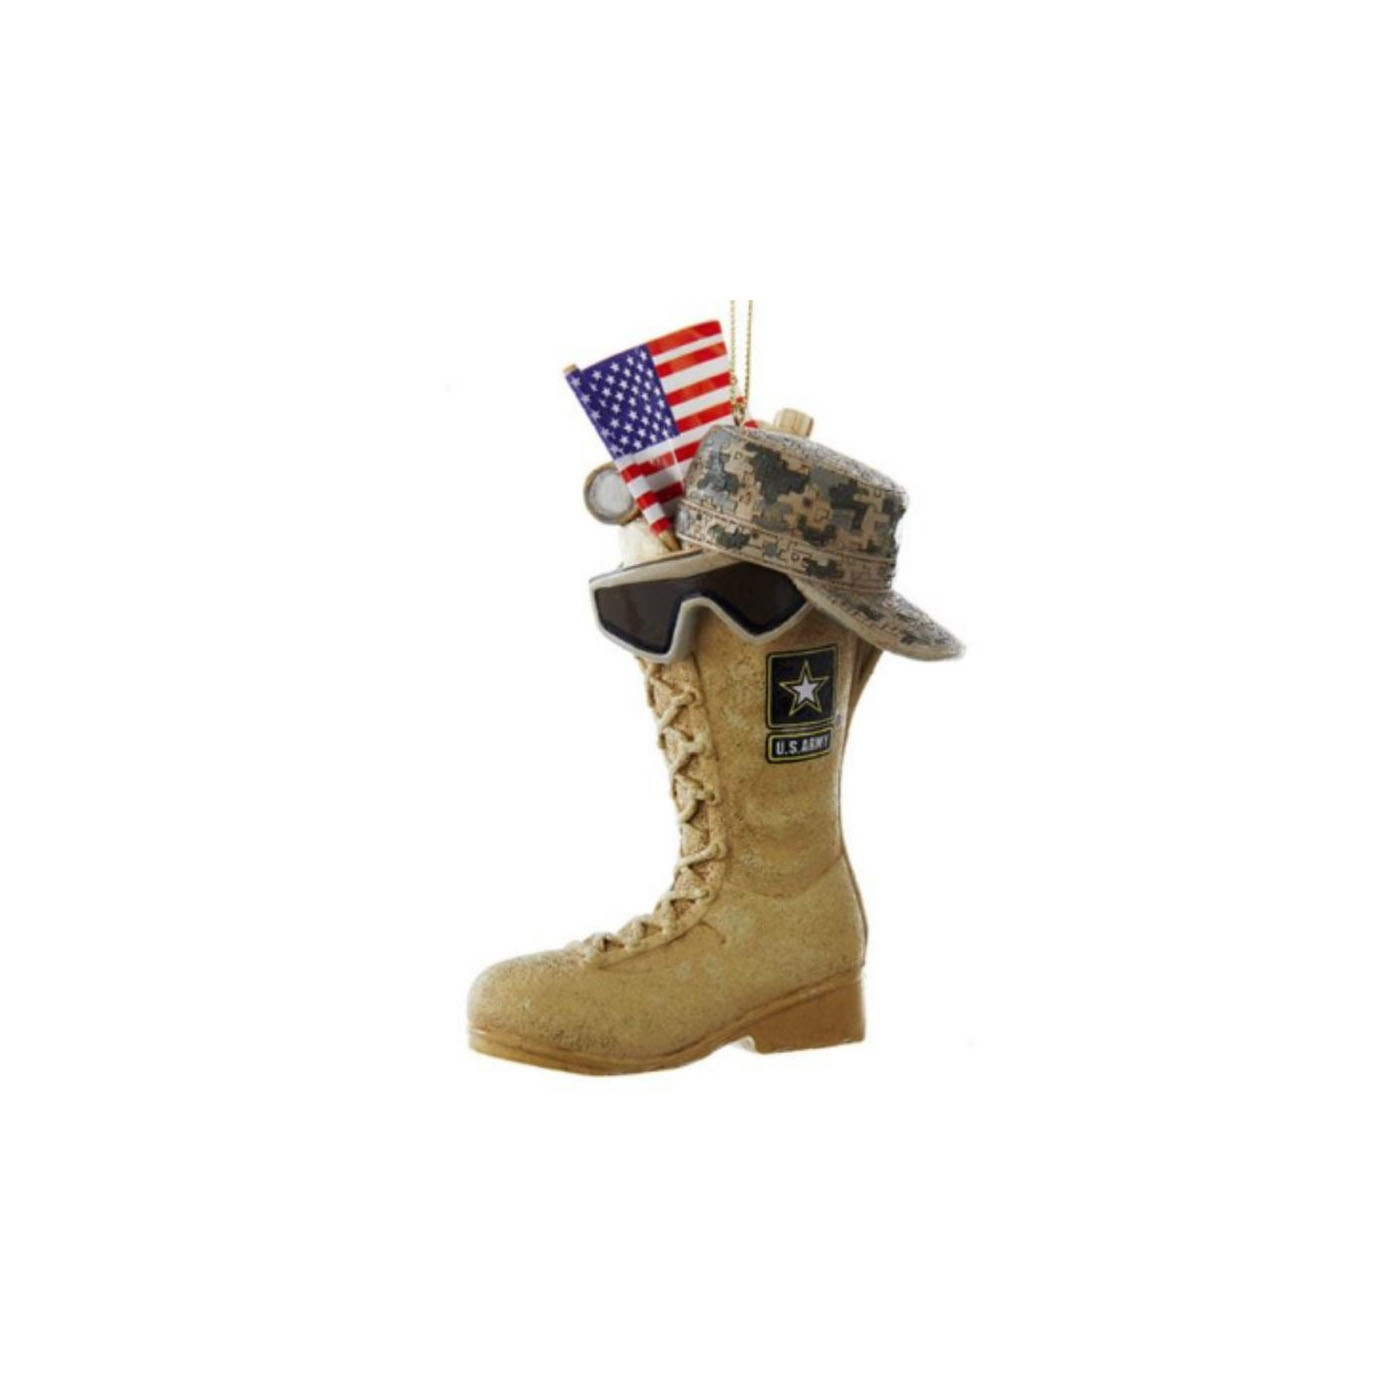 ARMY BOOT WITH FLAG ORNAMENT